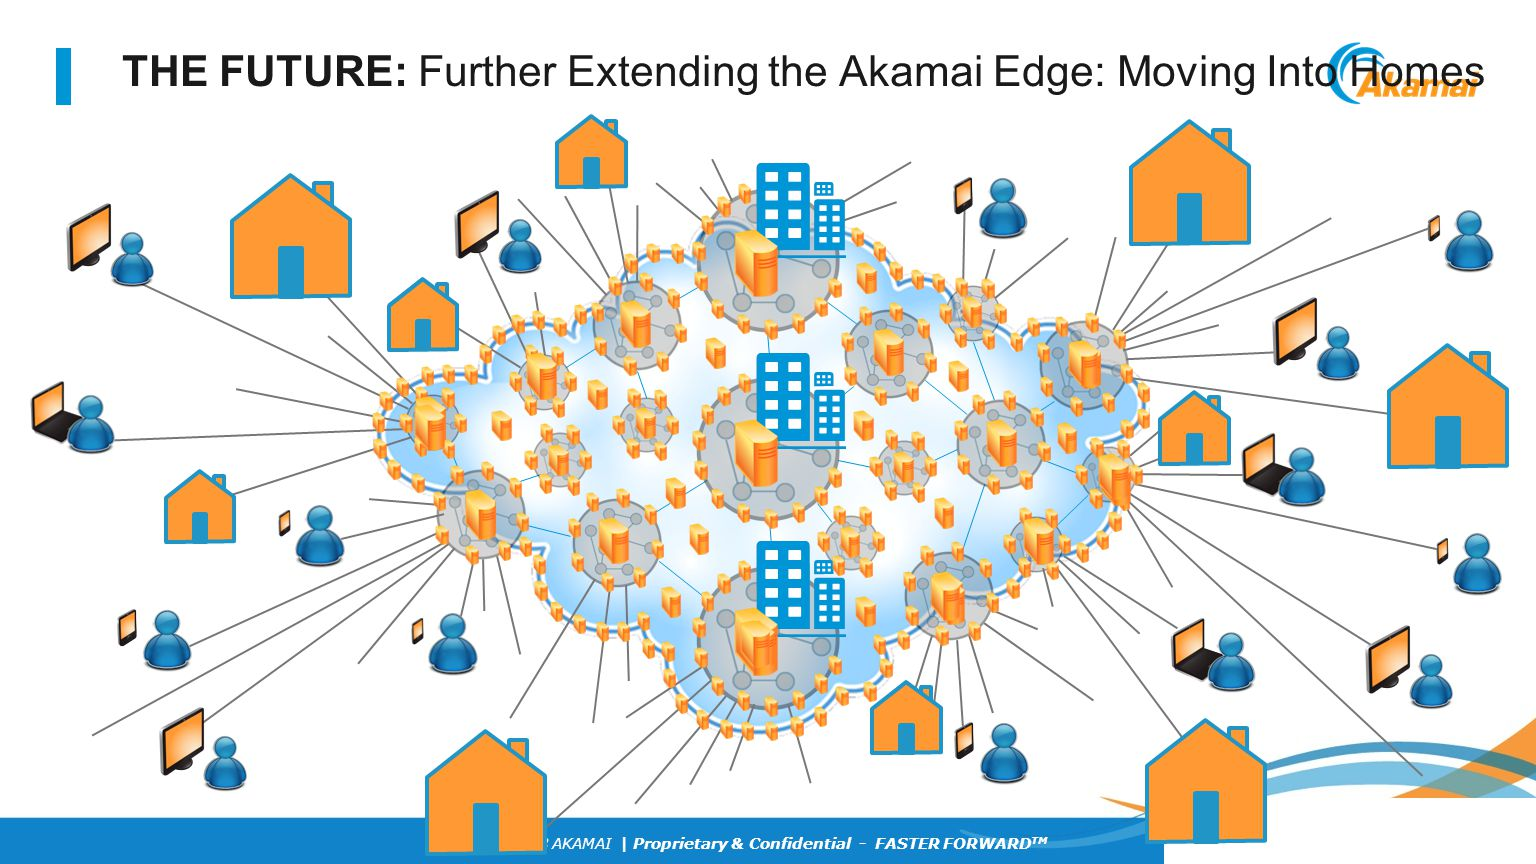 THE FUTURE: Further Extending the Akamai Edge: Moving Into Homes